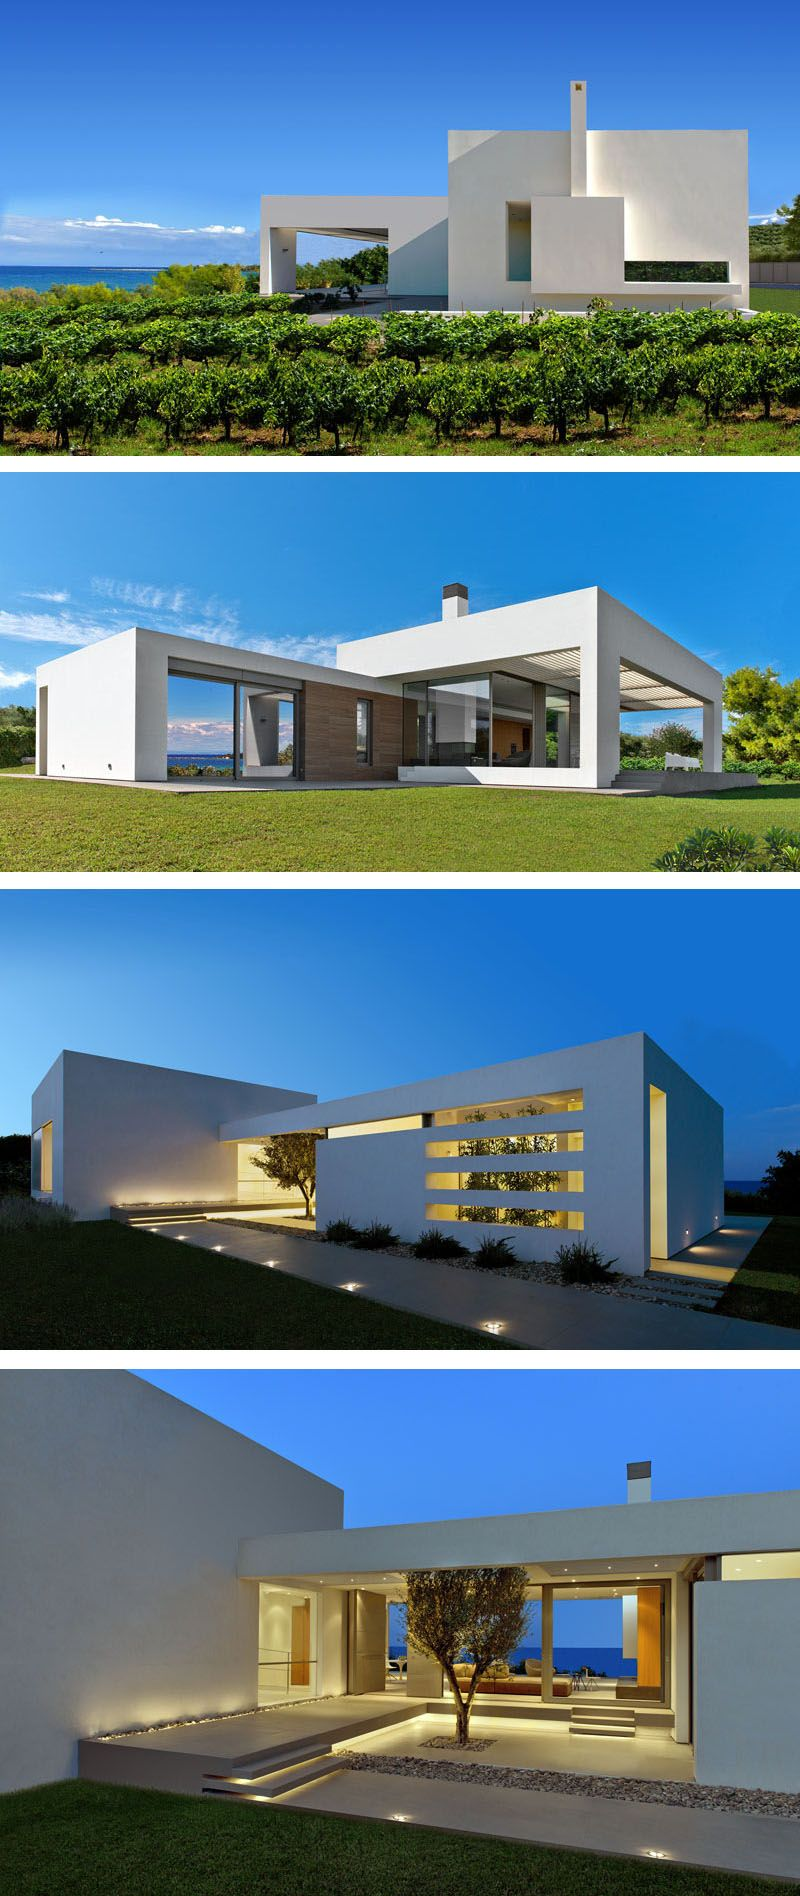 Simple modern house over project ideas dream house modern simple house - This House Designed By Katerina Valsamaki Is Located In The Northeast Corner Of The Greece Housesimple House Designgreece Designmodern